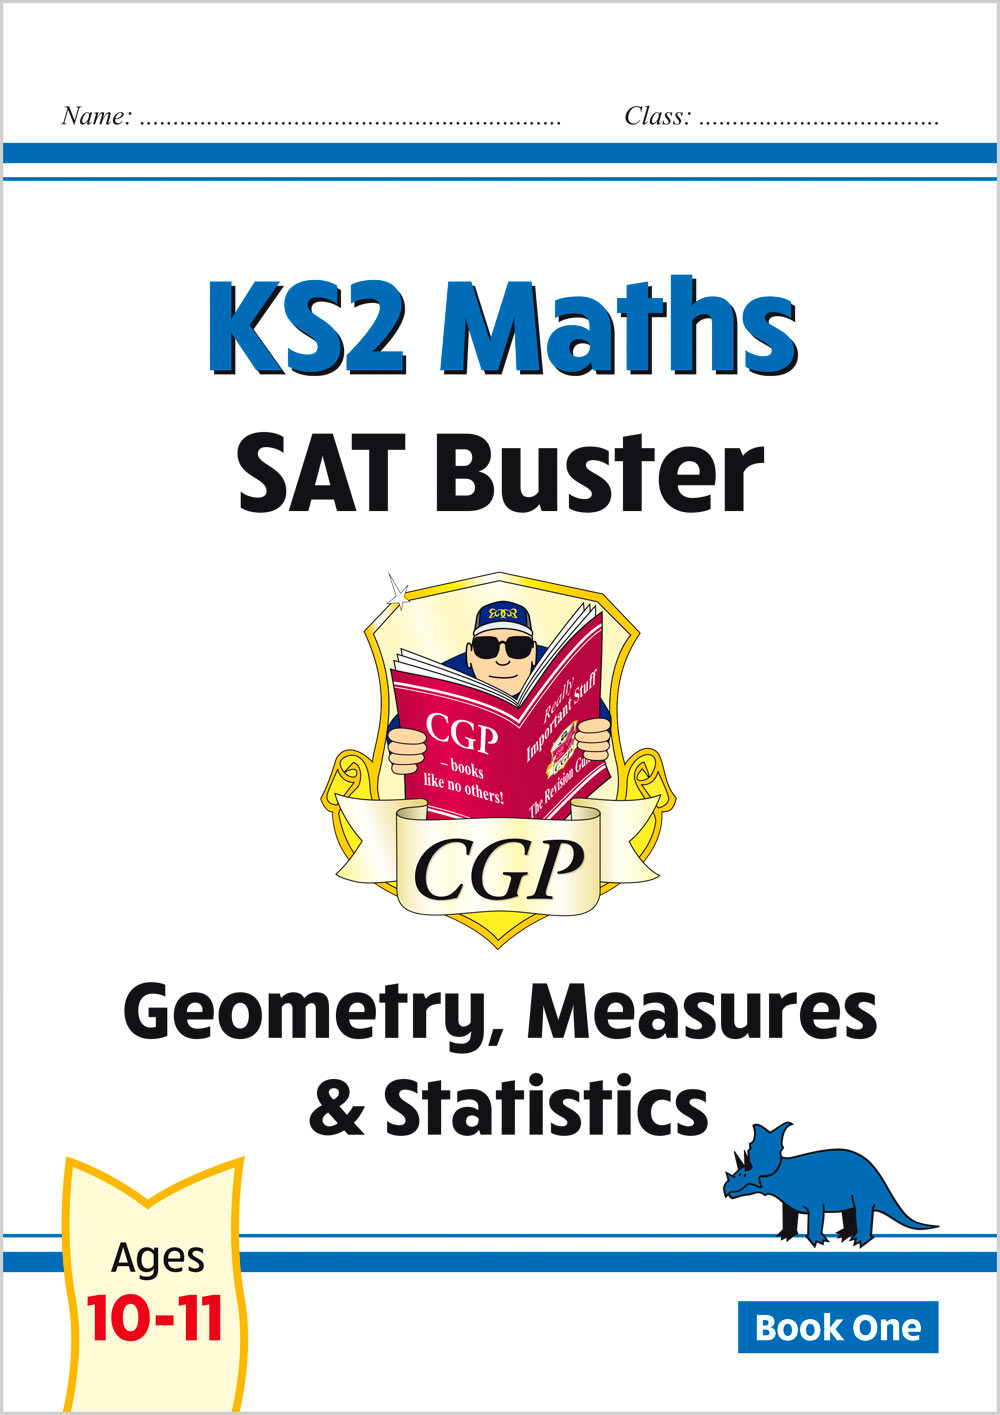 M6SMD24 - New KS2 Maths SAT Buster: Geometry, Measures & Statistics - Book 1 (for the 2021 tests)